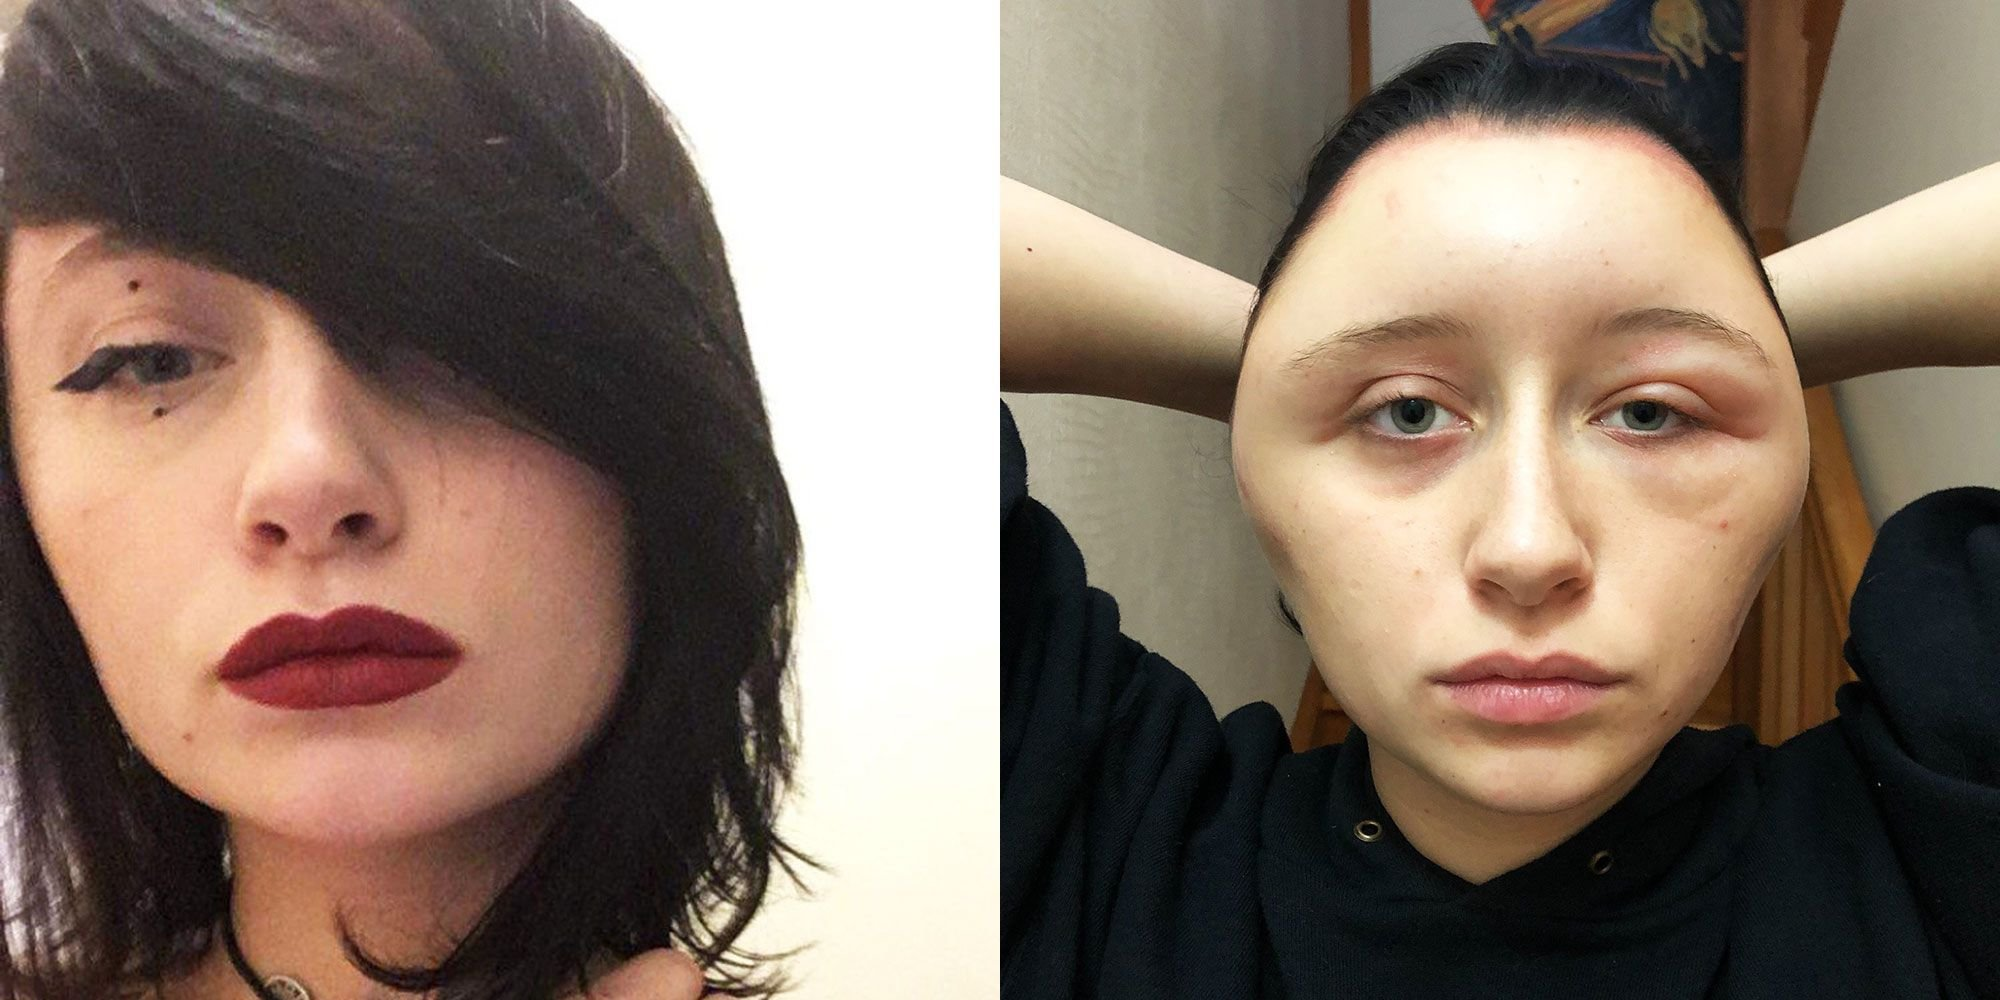 The Best Woman Had Severely Swollen Head After Allergic Reaction To Pictures